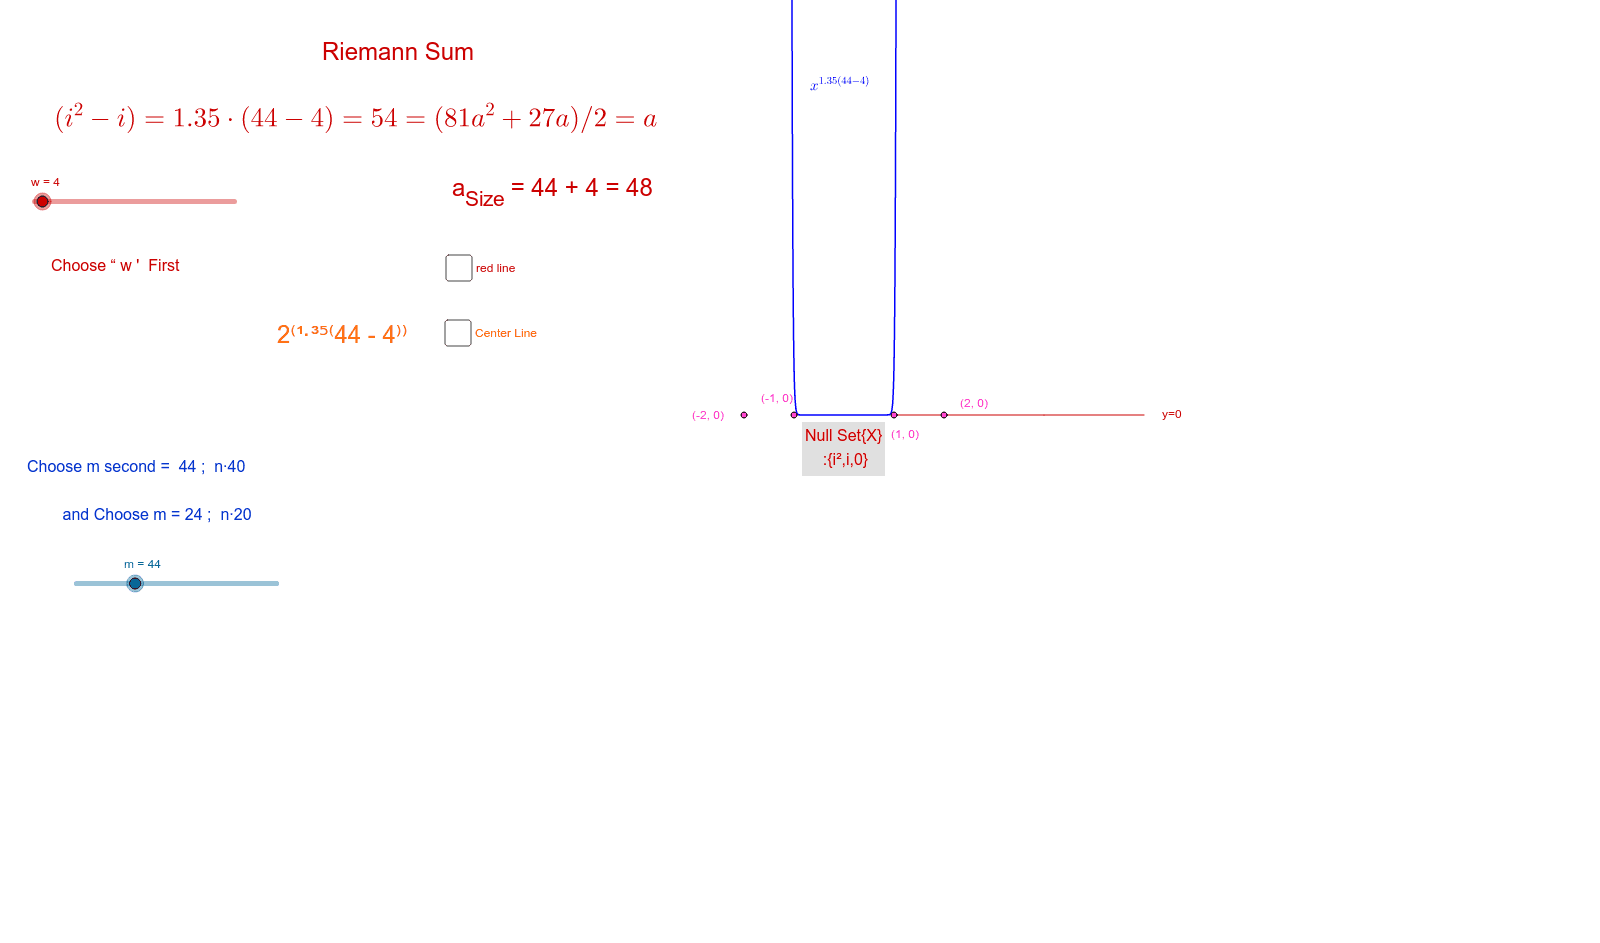 See w = 84  with  m = 44 ; Chose w=64 , m = 44 to see hyperbola ; differences of 20